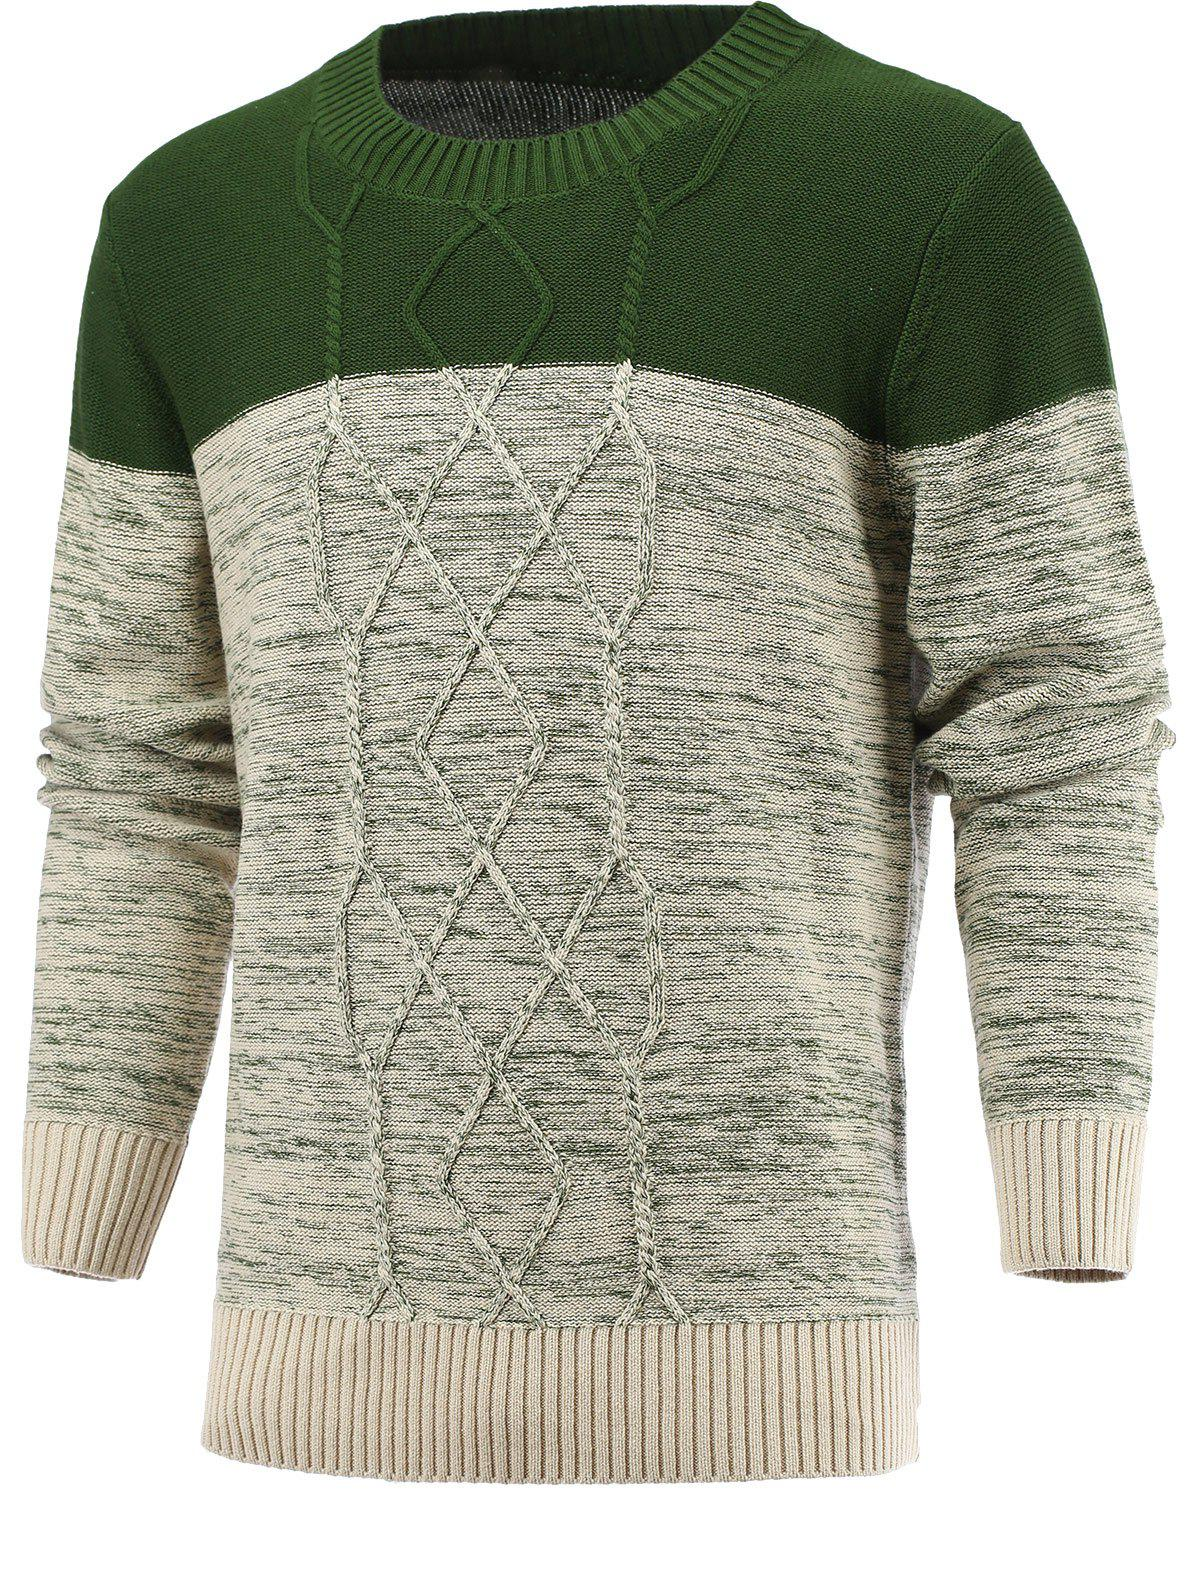 Round Neck Geometric Knitted Spliced Sweater